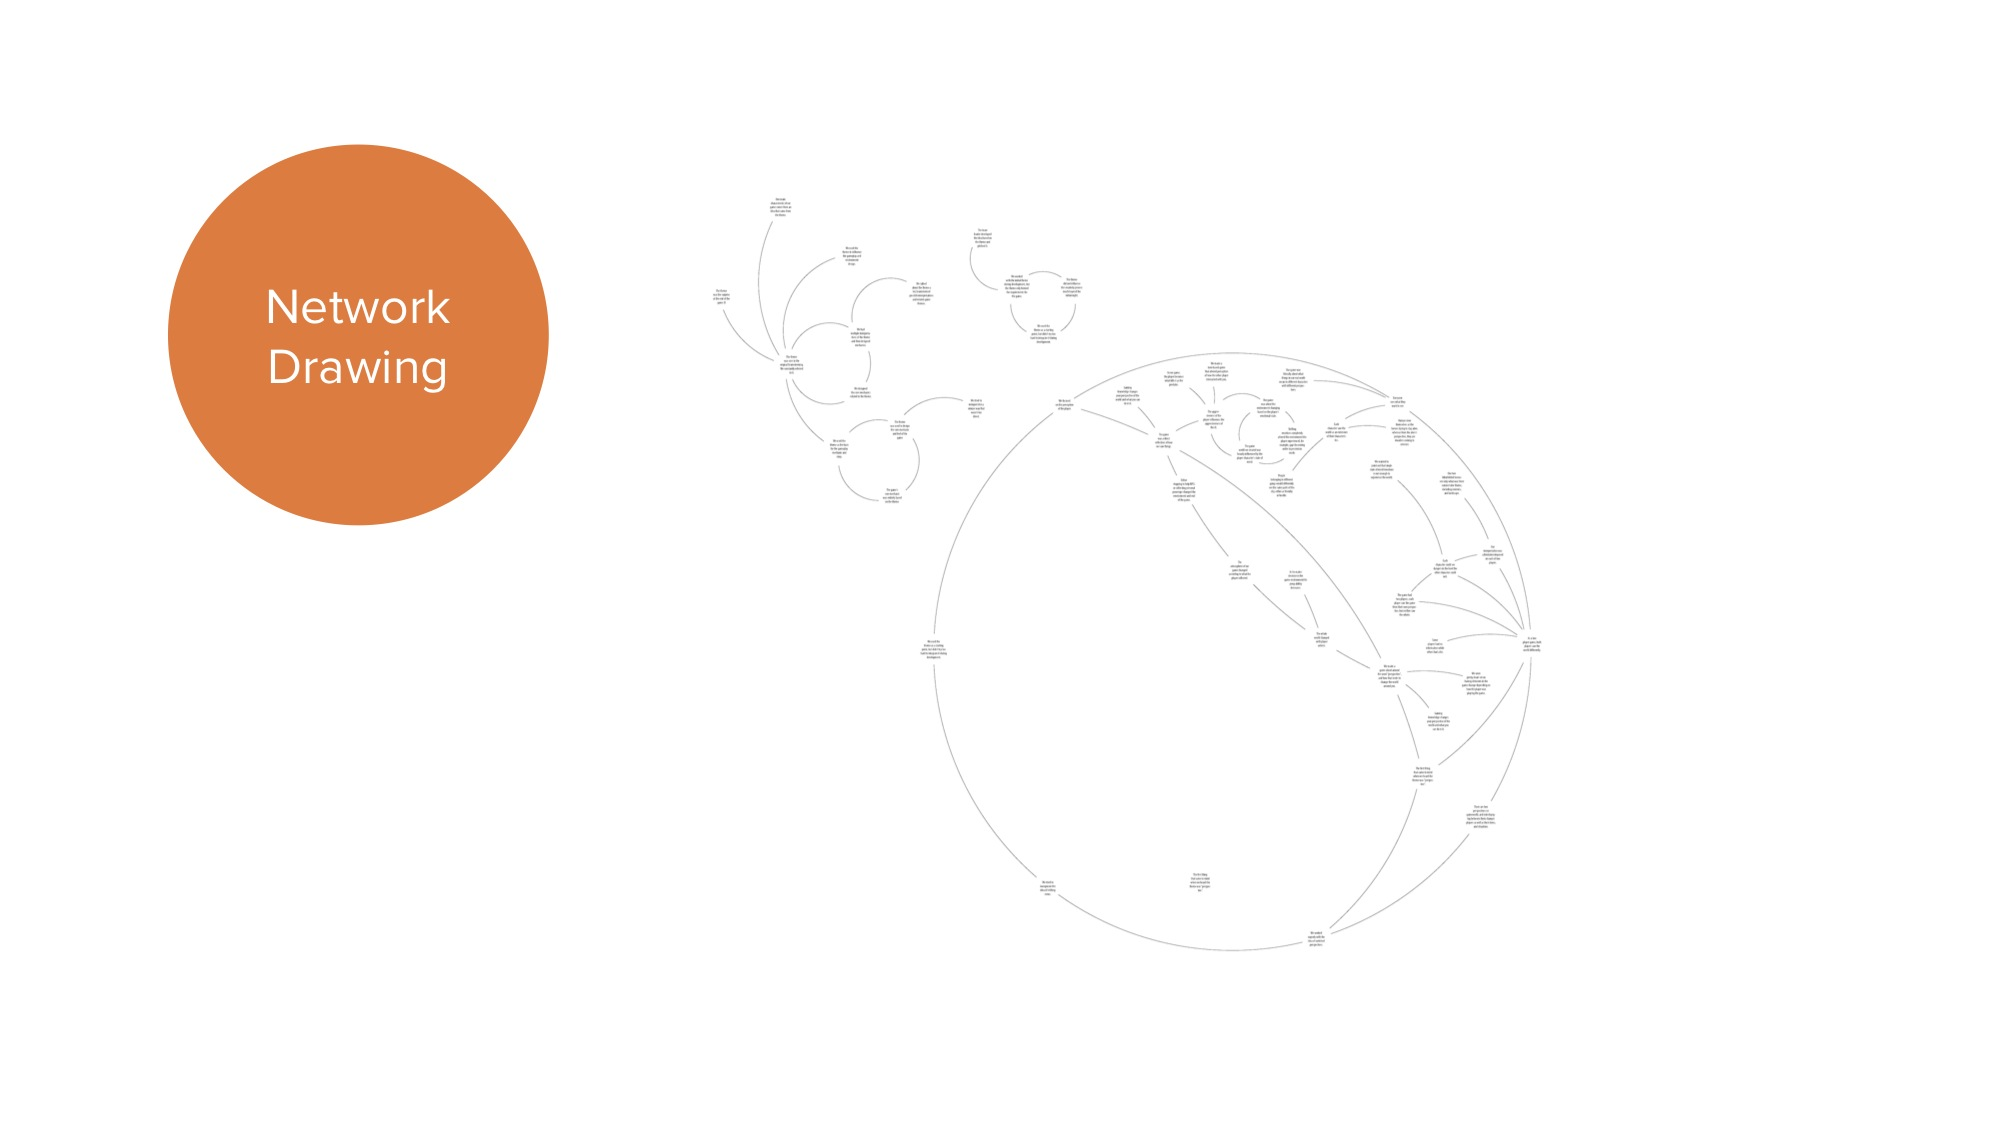 2014.10.17 - -How Are Ideas Connected- Drawing the Design Process of Idea Networks in Global Game Jam- - Meaningful Play 2014 15.jpeg